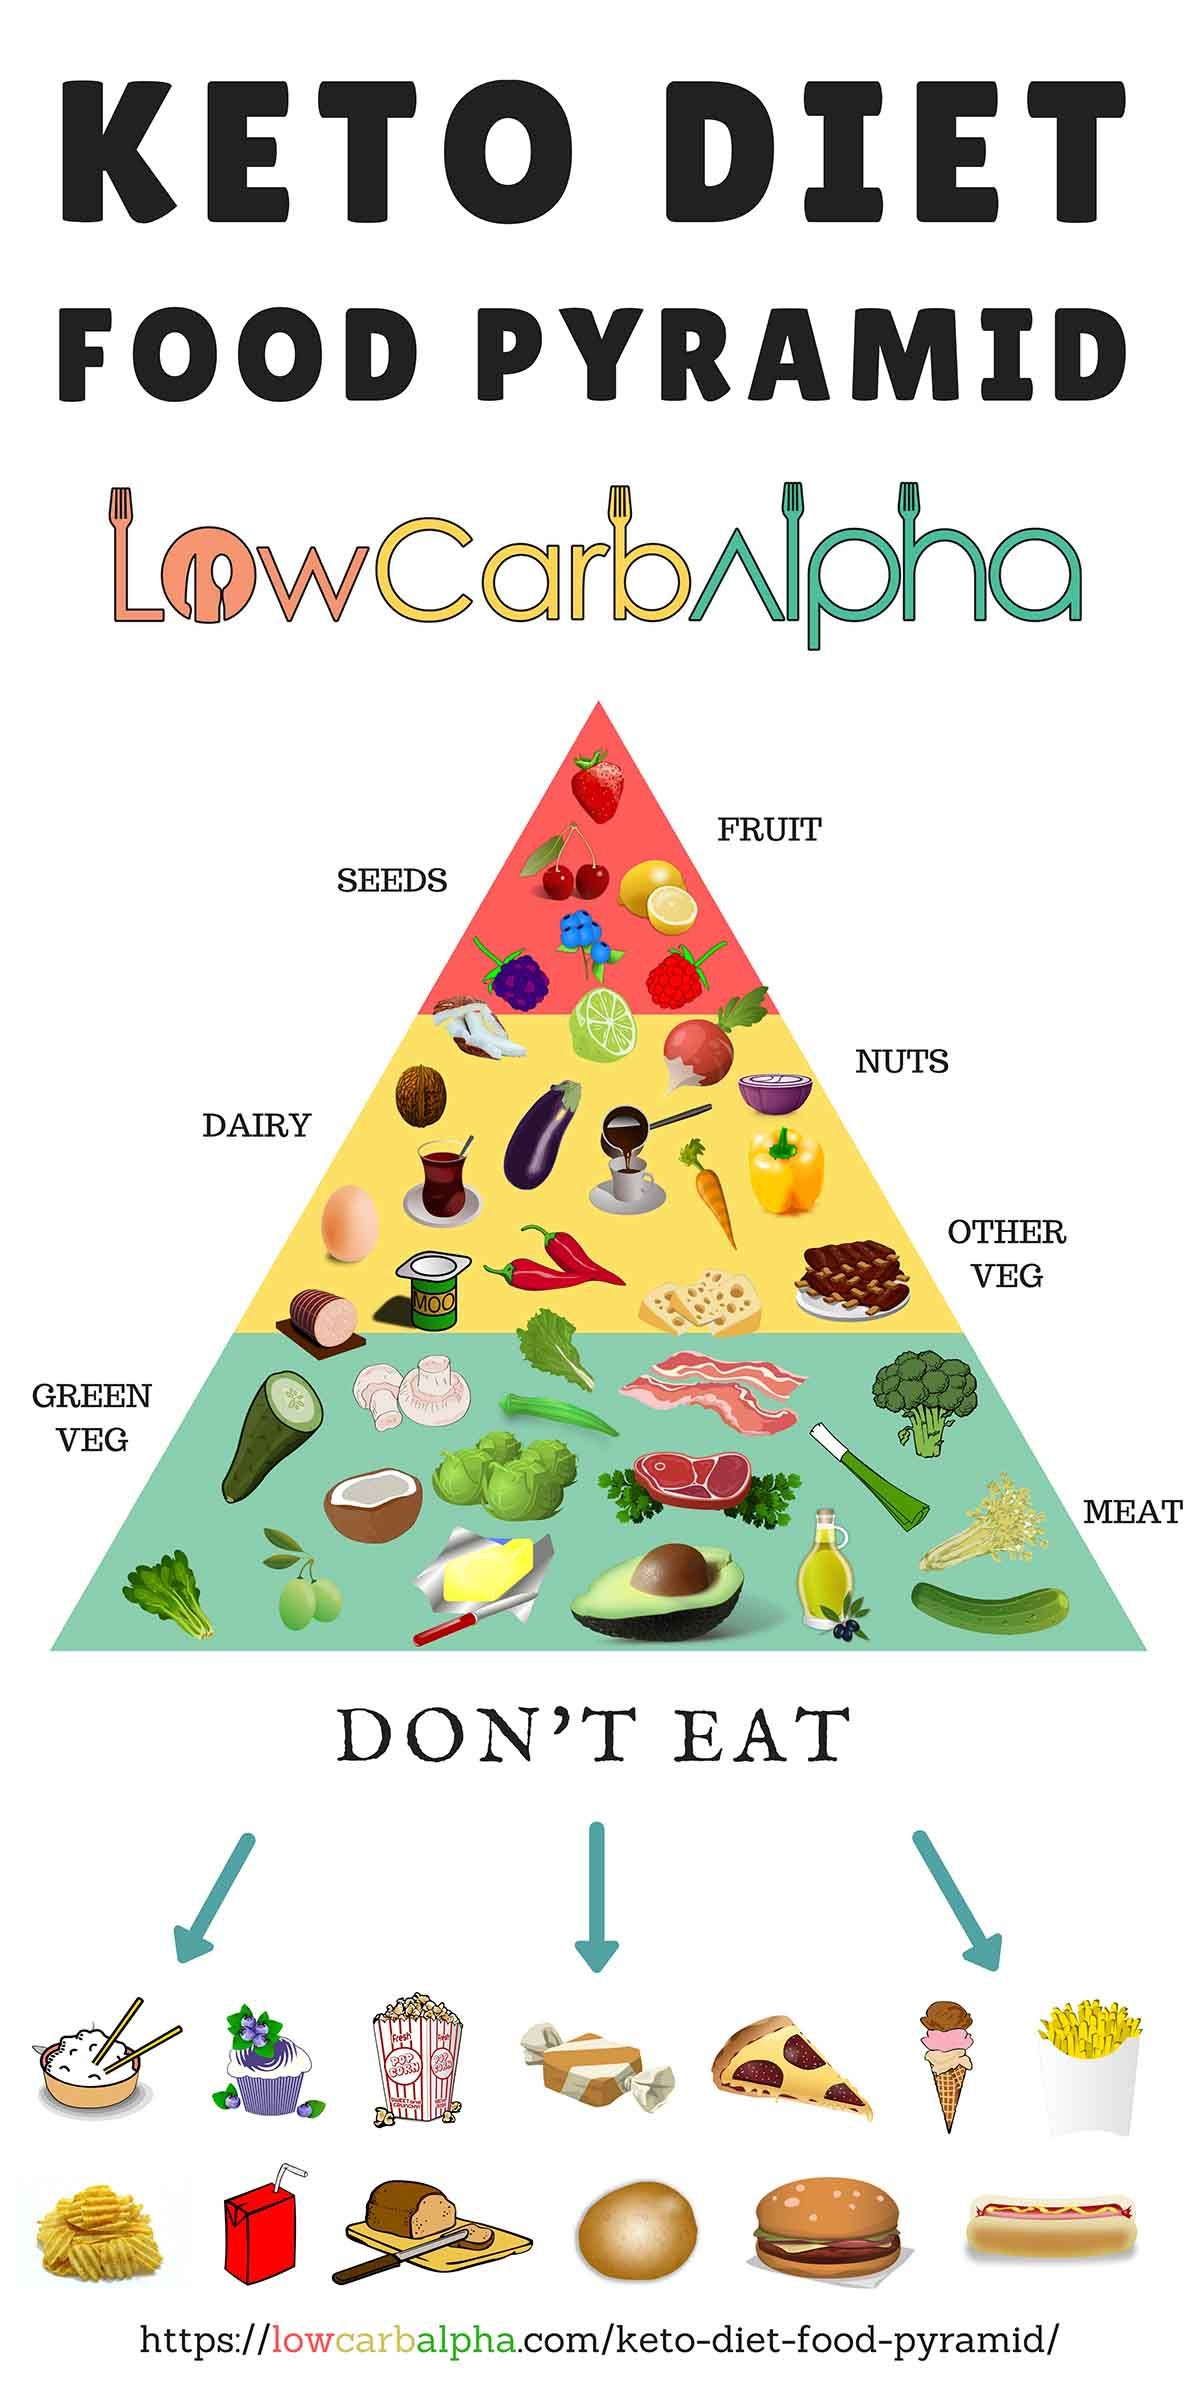 Diet plan for healthy life - Keto Diet Food Pyramid